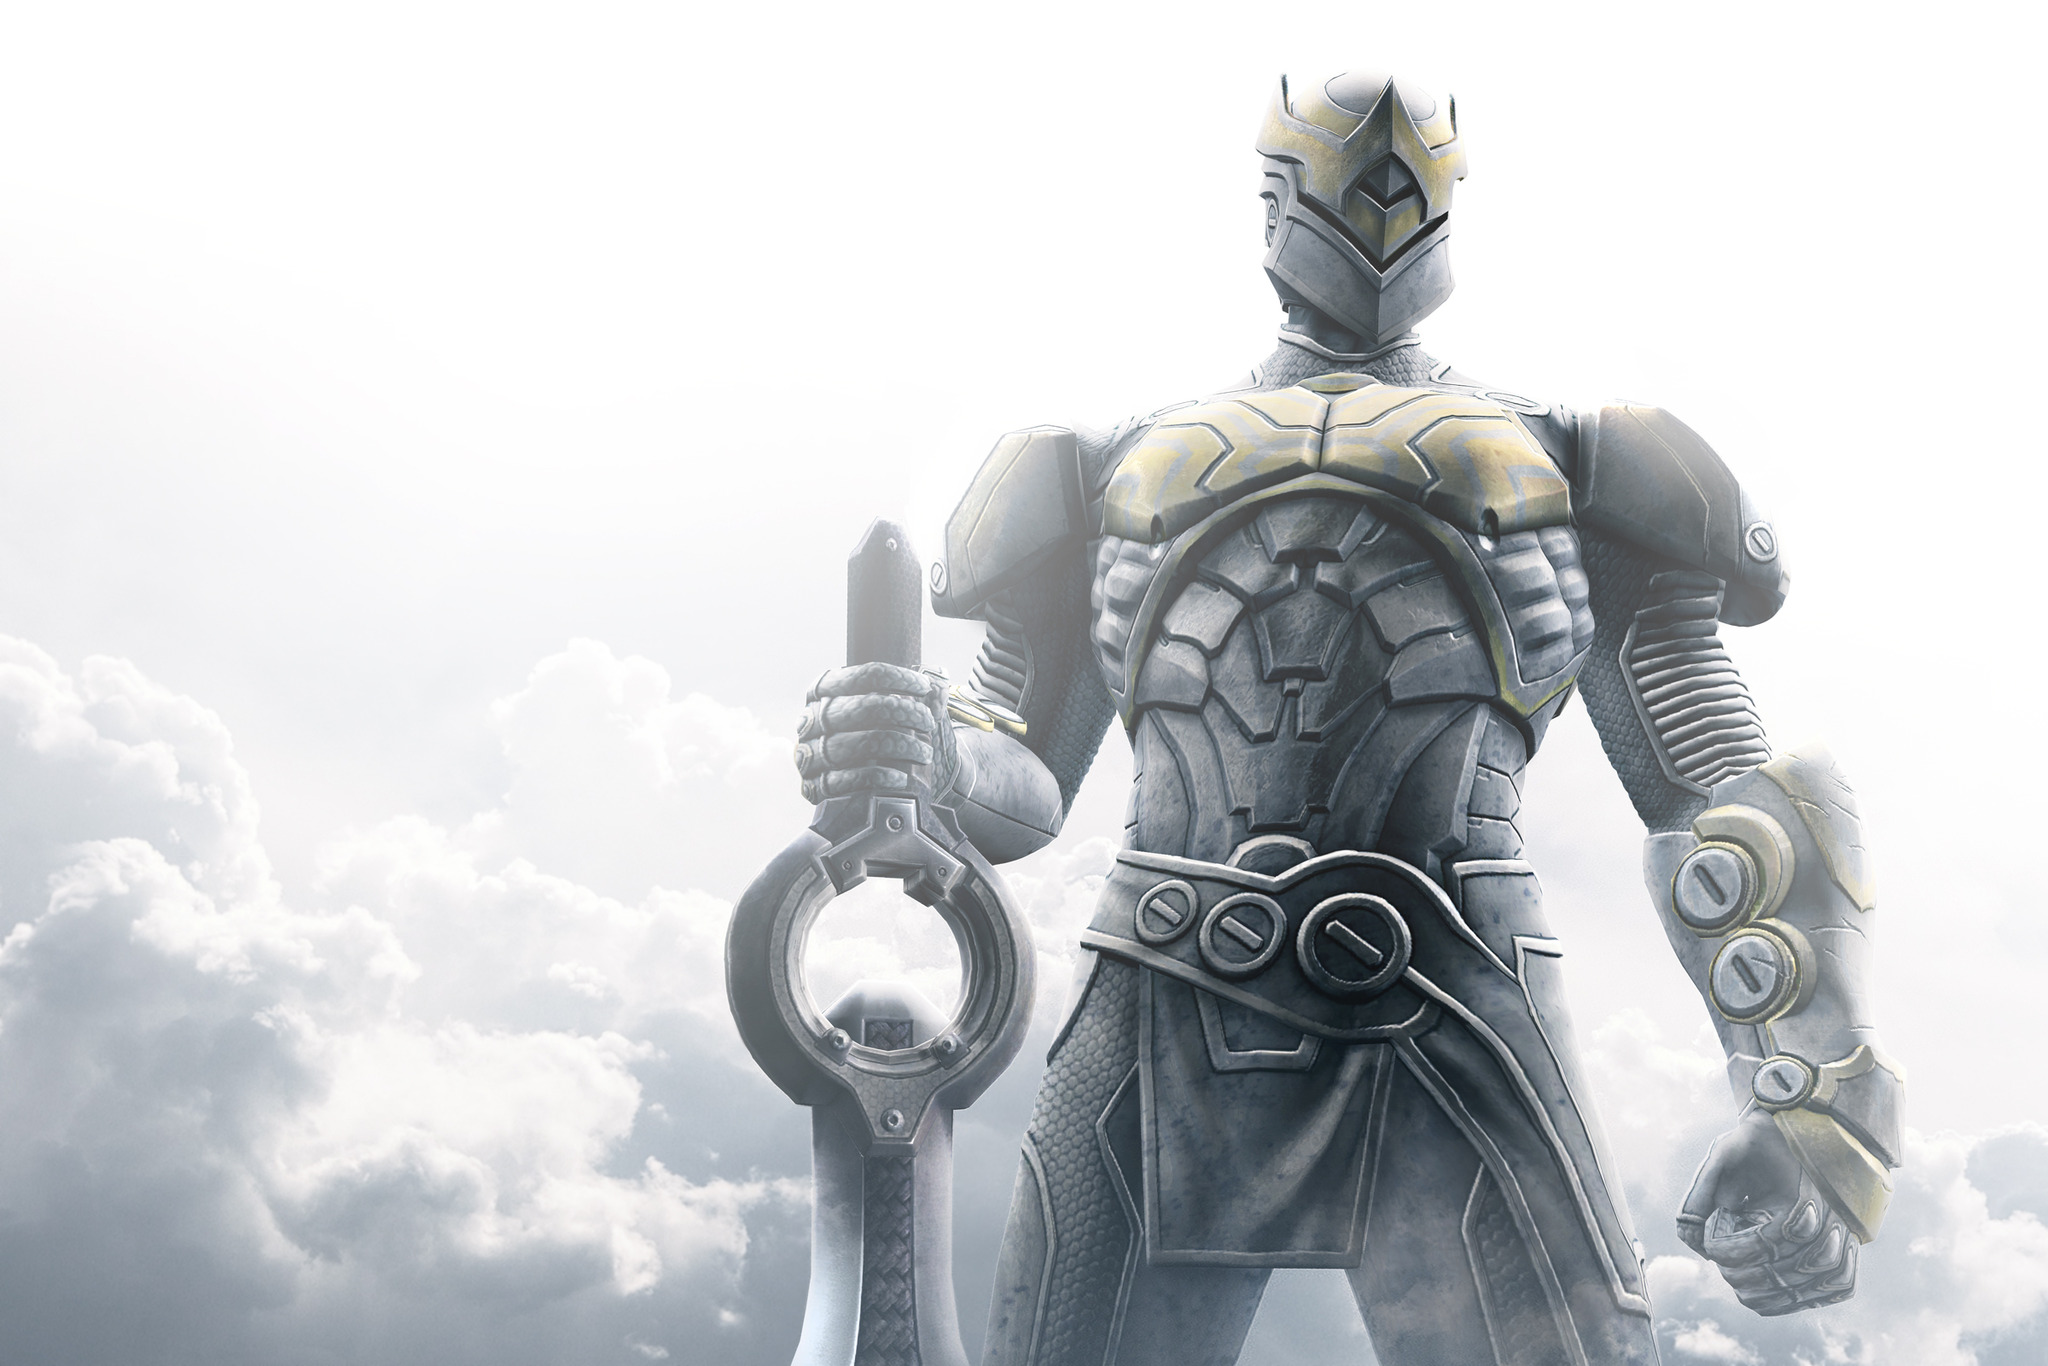 Pin by Kat on Infinity Blade Epic games, Sci fi games, Games